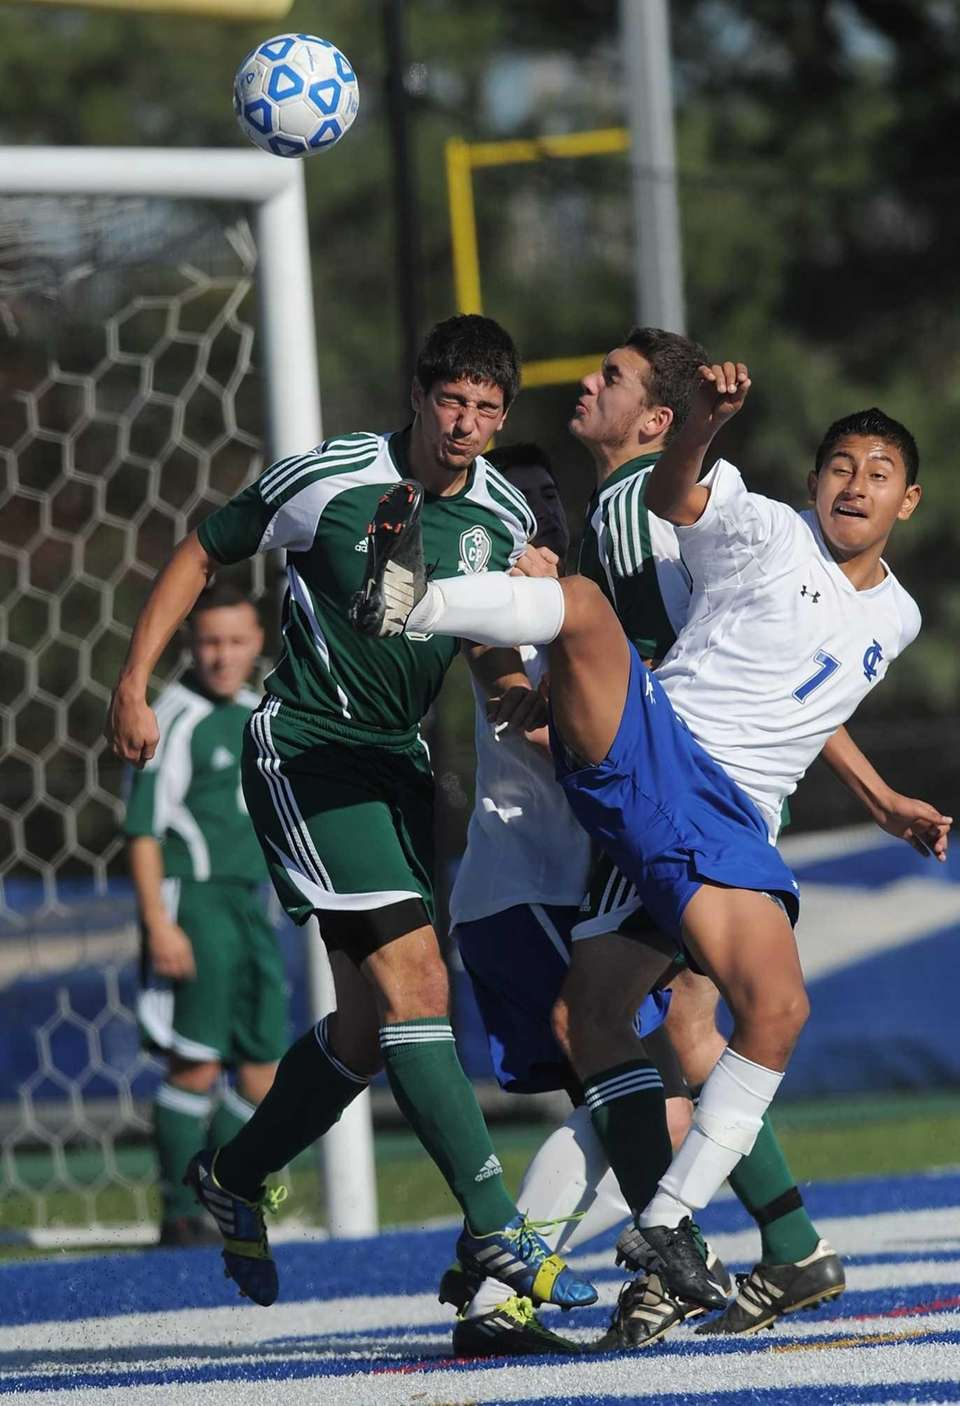 Carle Place's Roberto Posillico, left, clears the ball